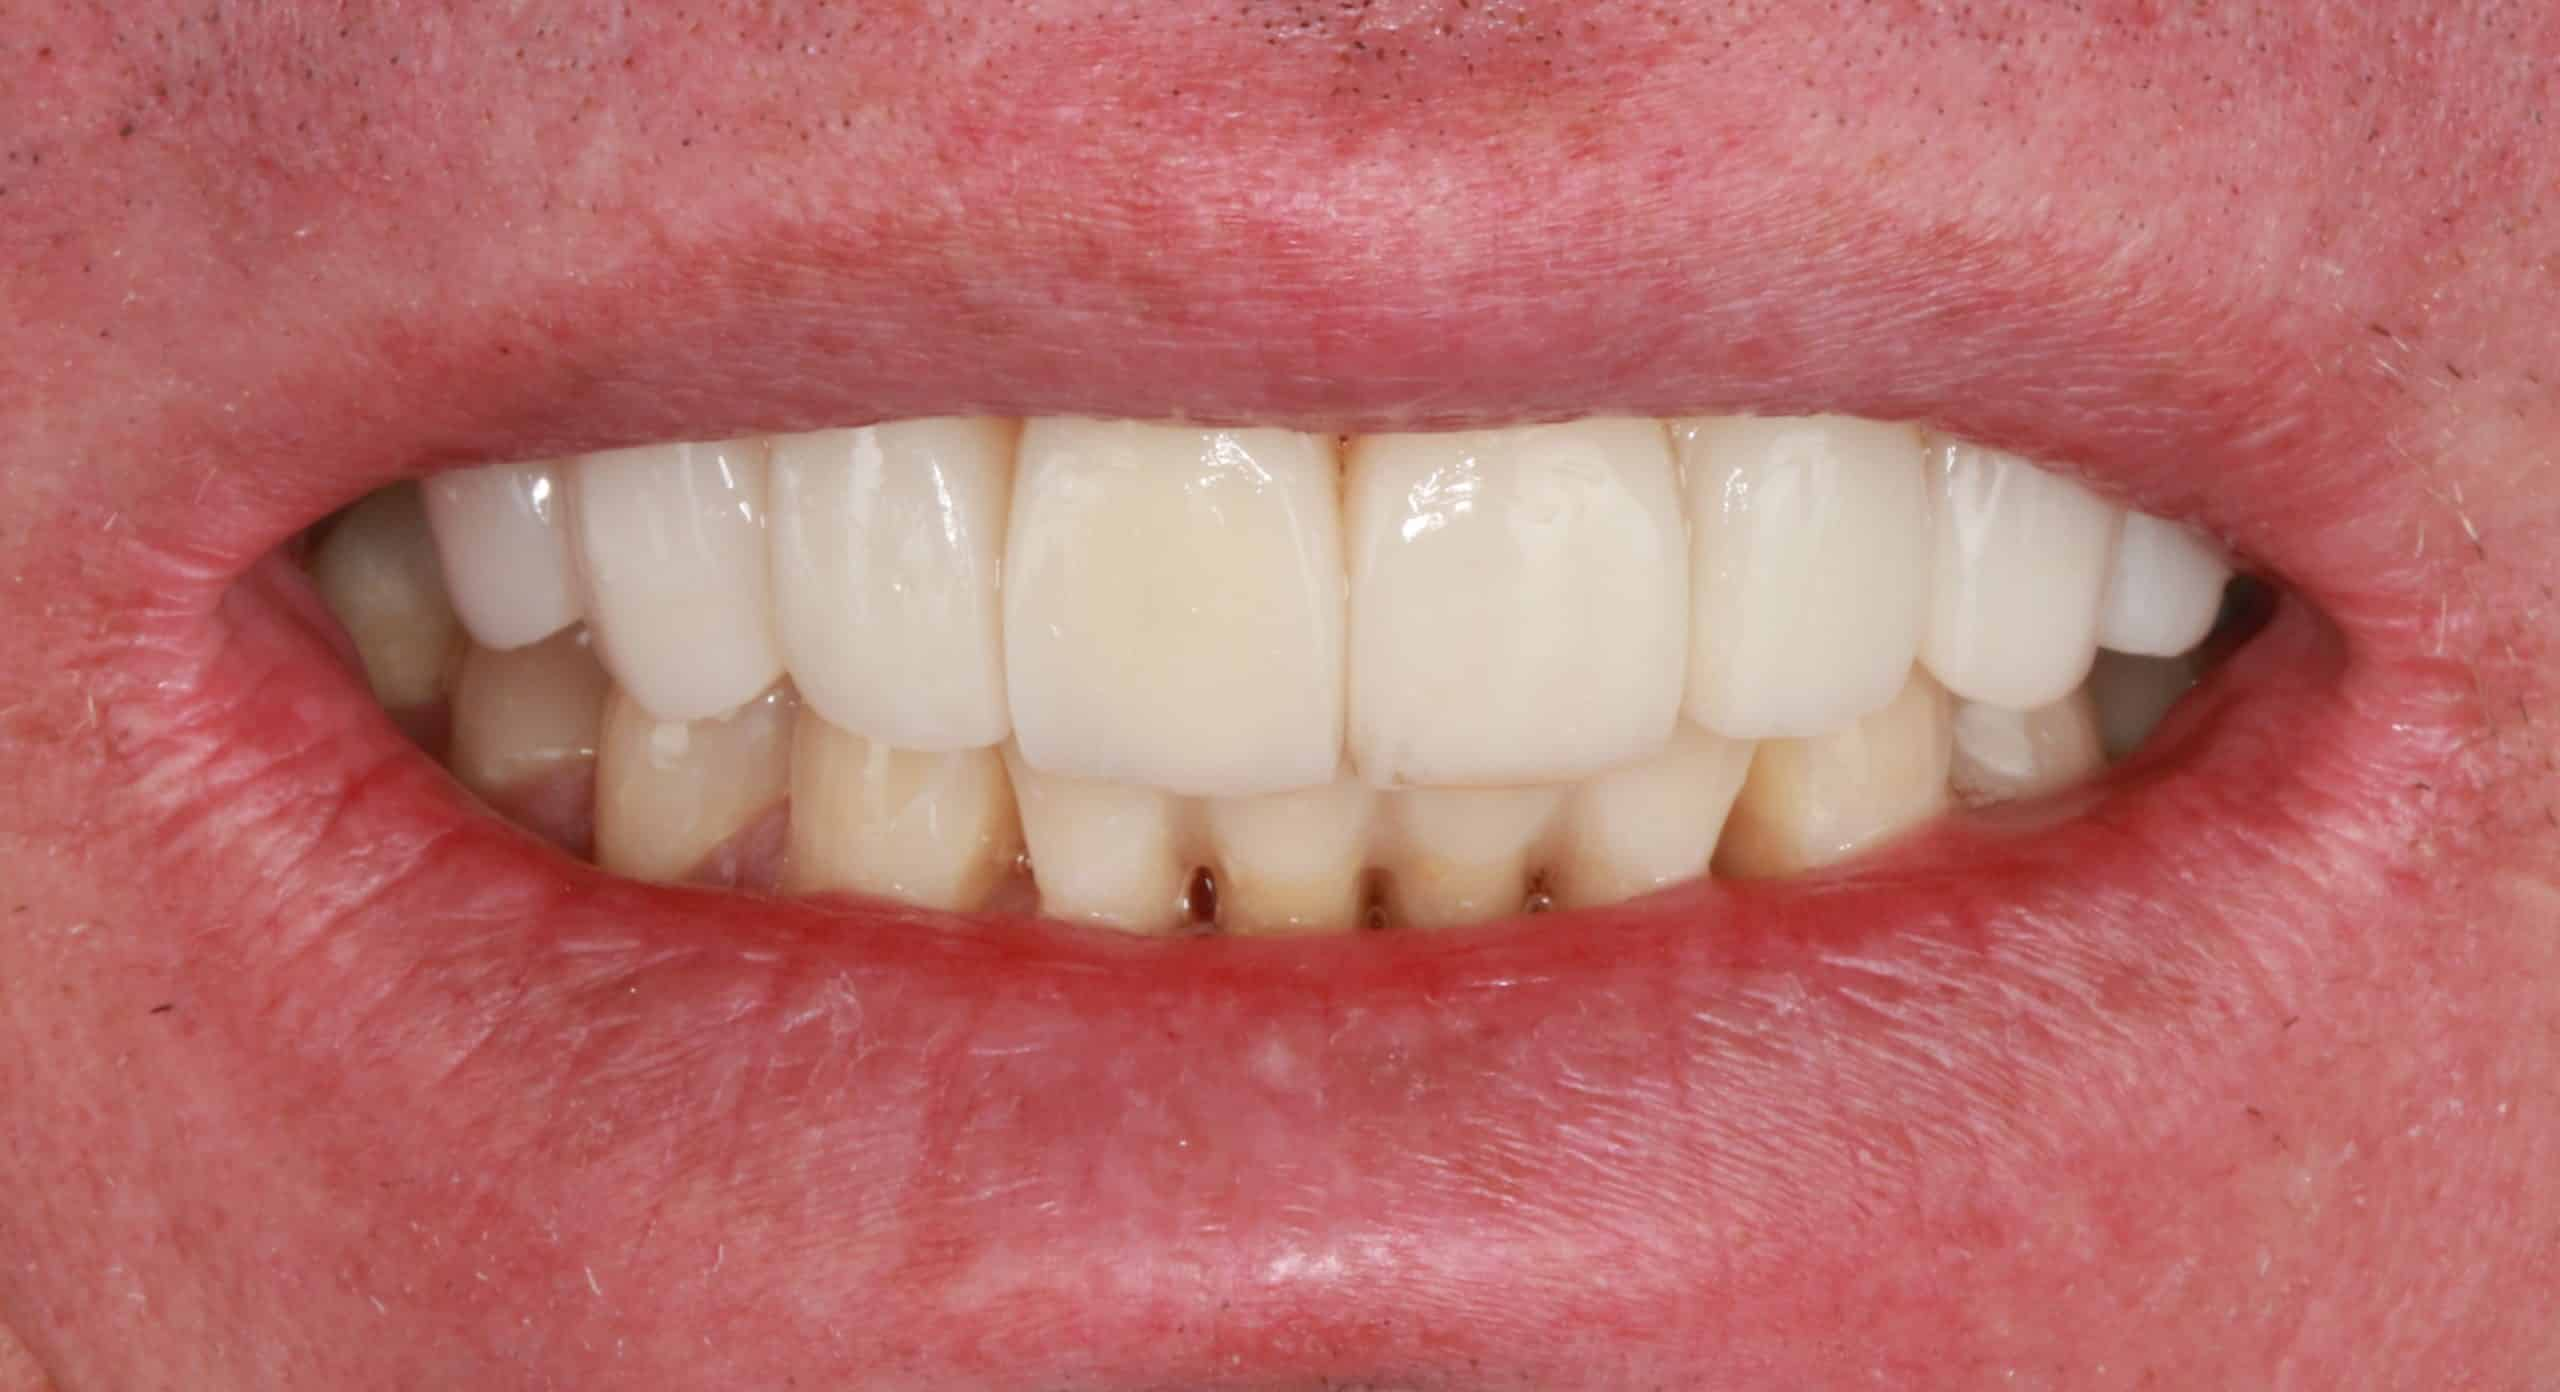 After composite veneers